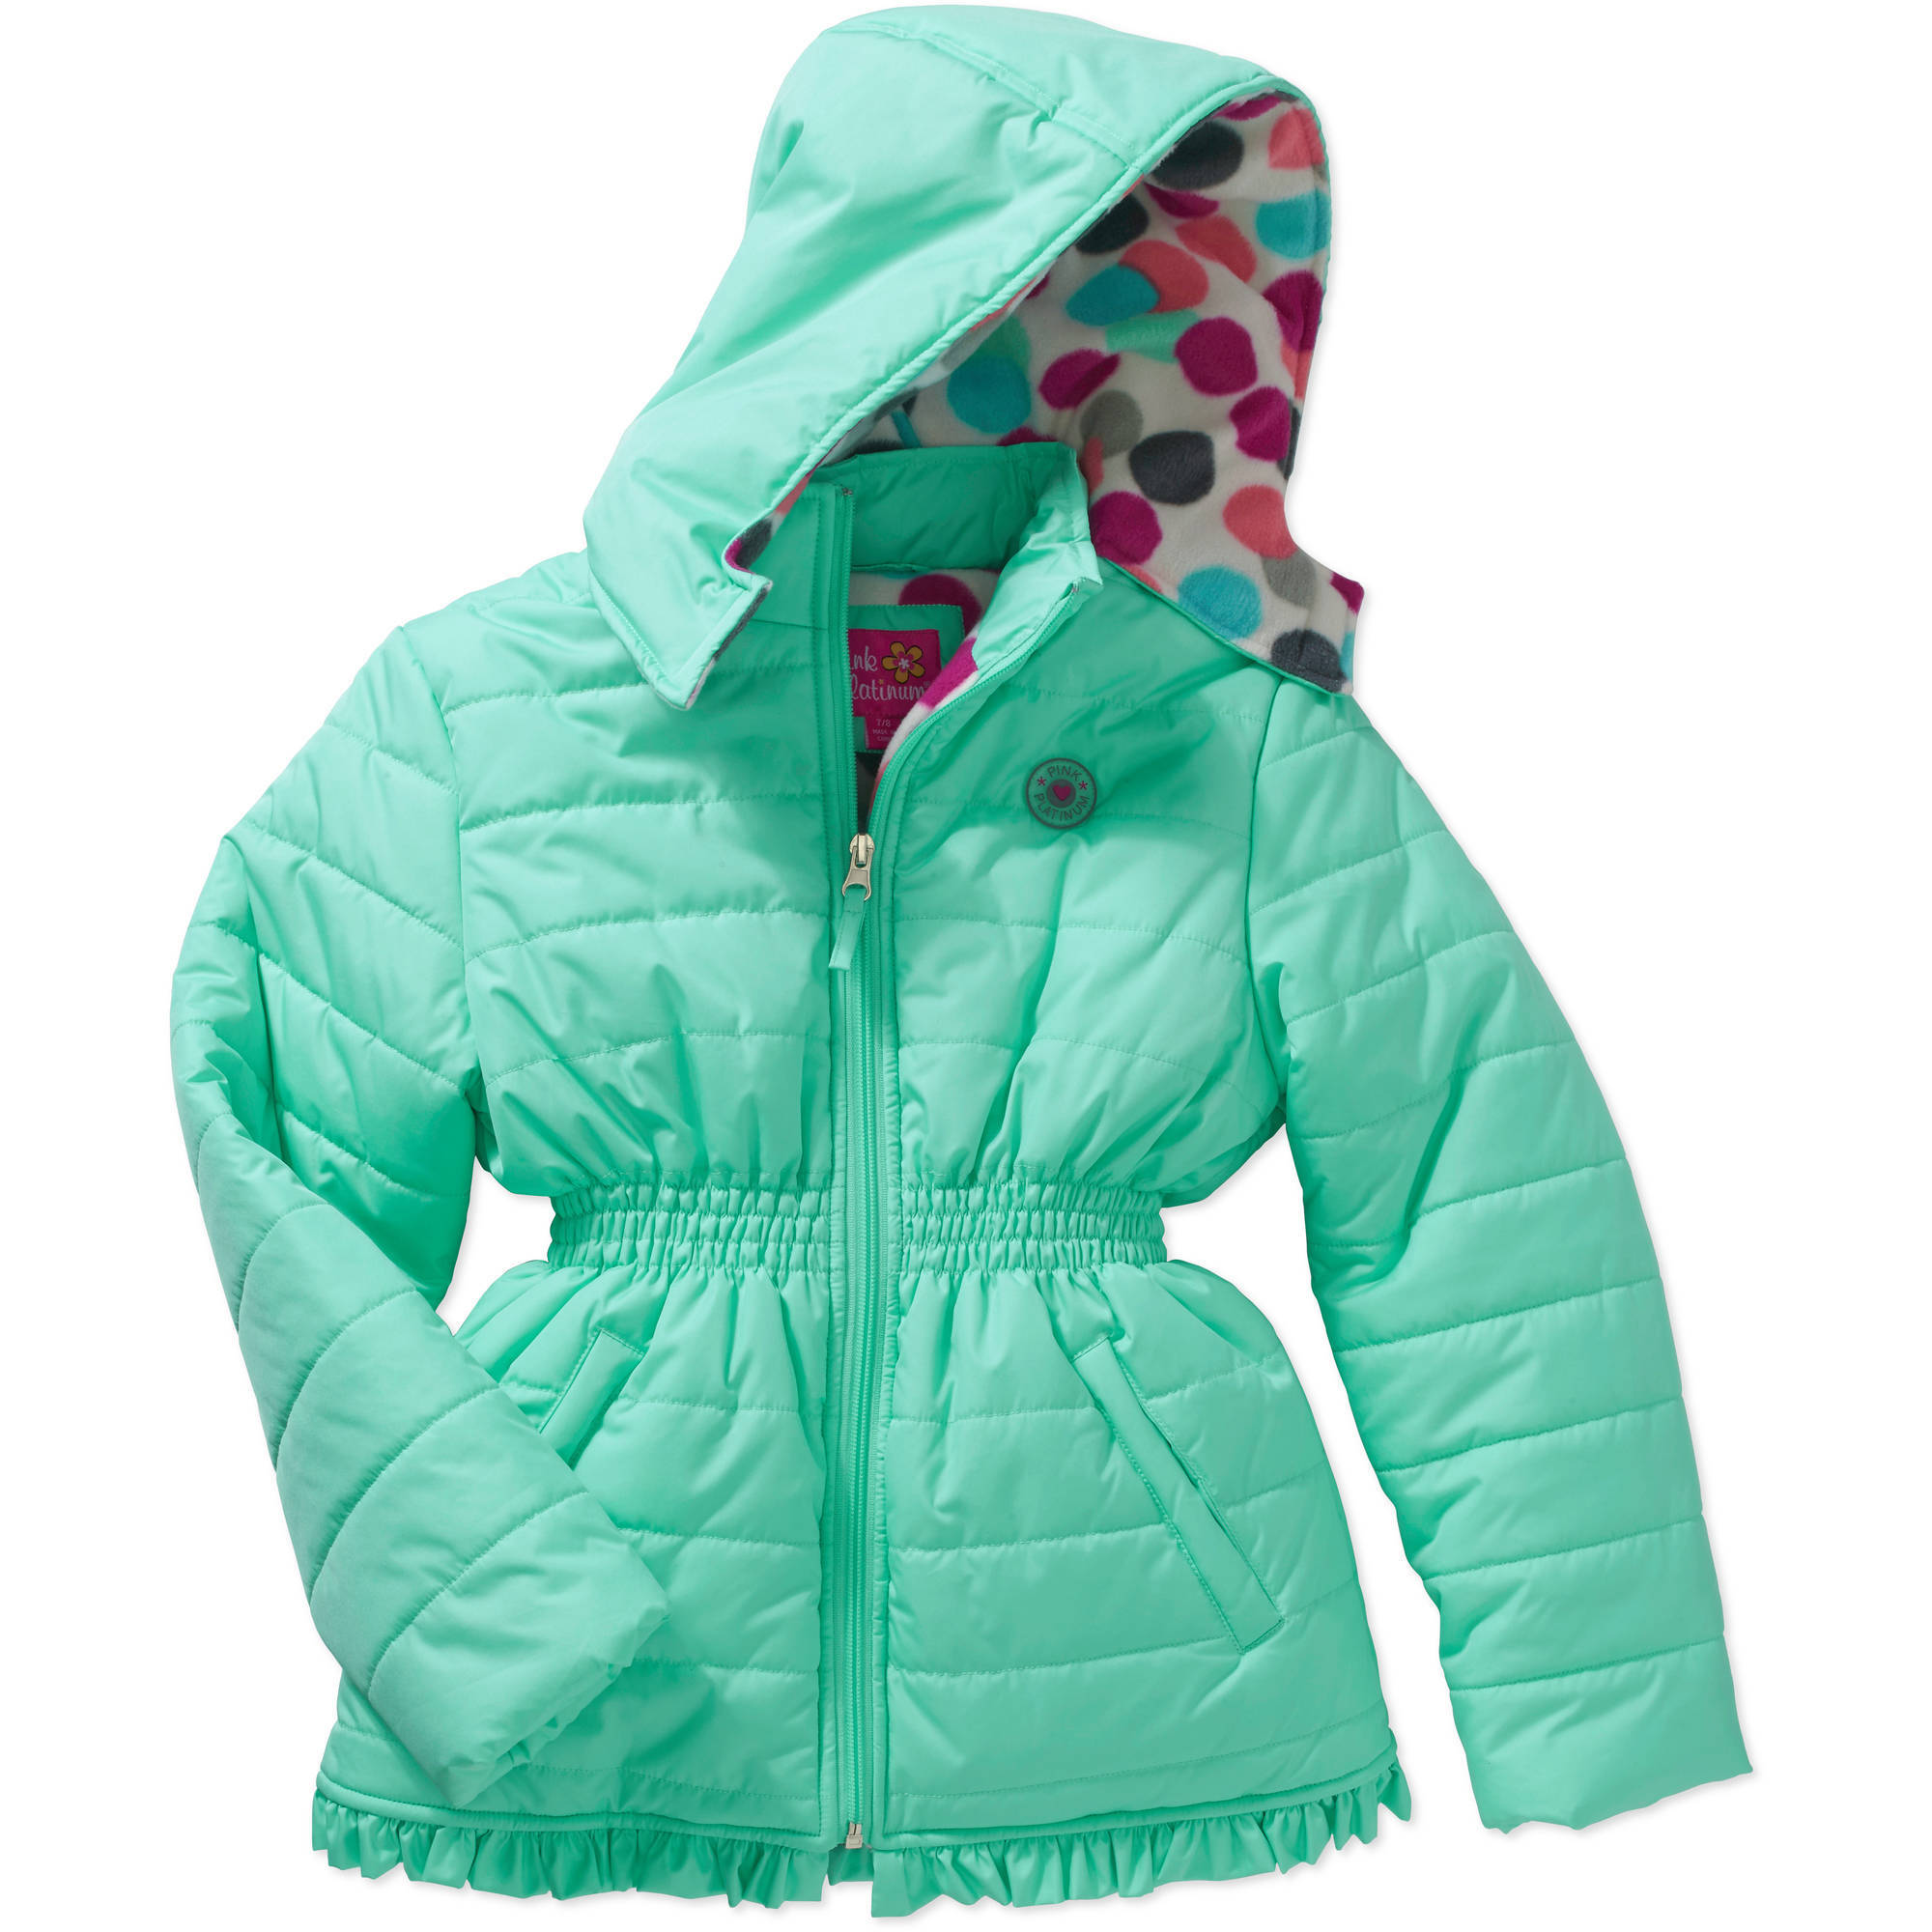 Girls' Banded Waist Puffer Jacket with Pockets and Hood